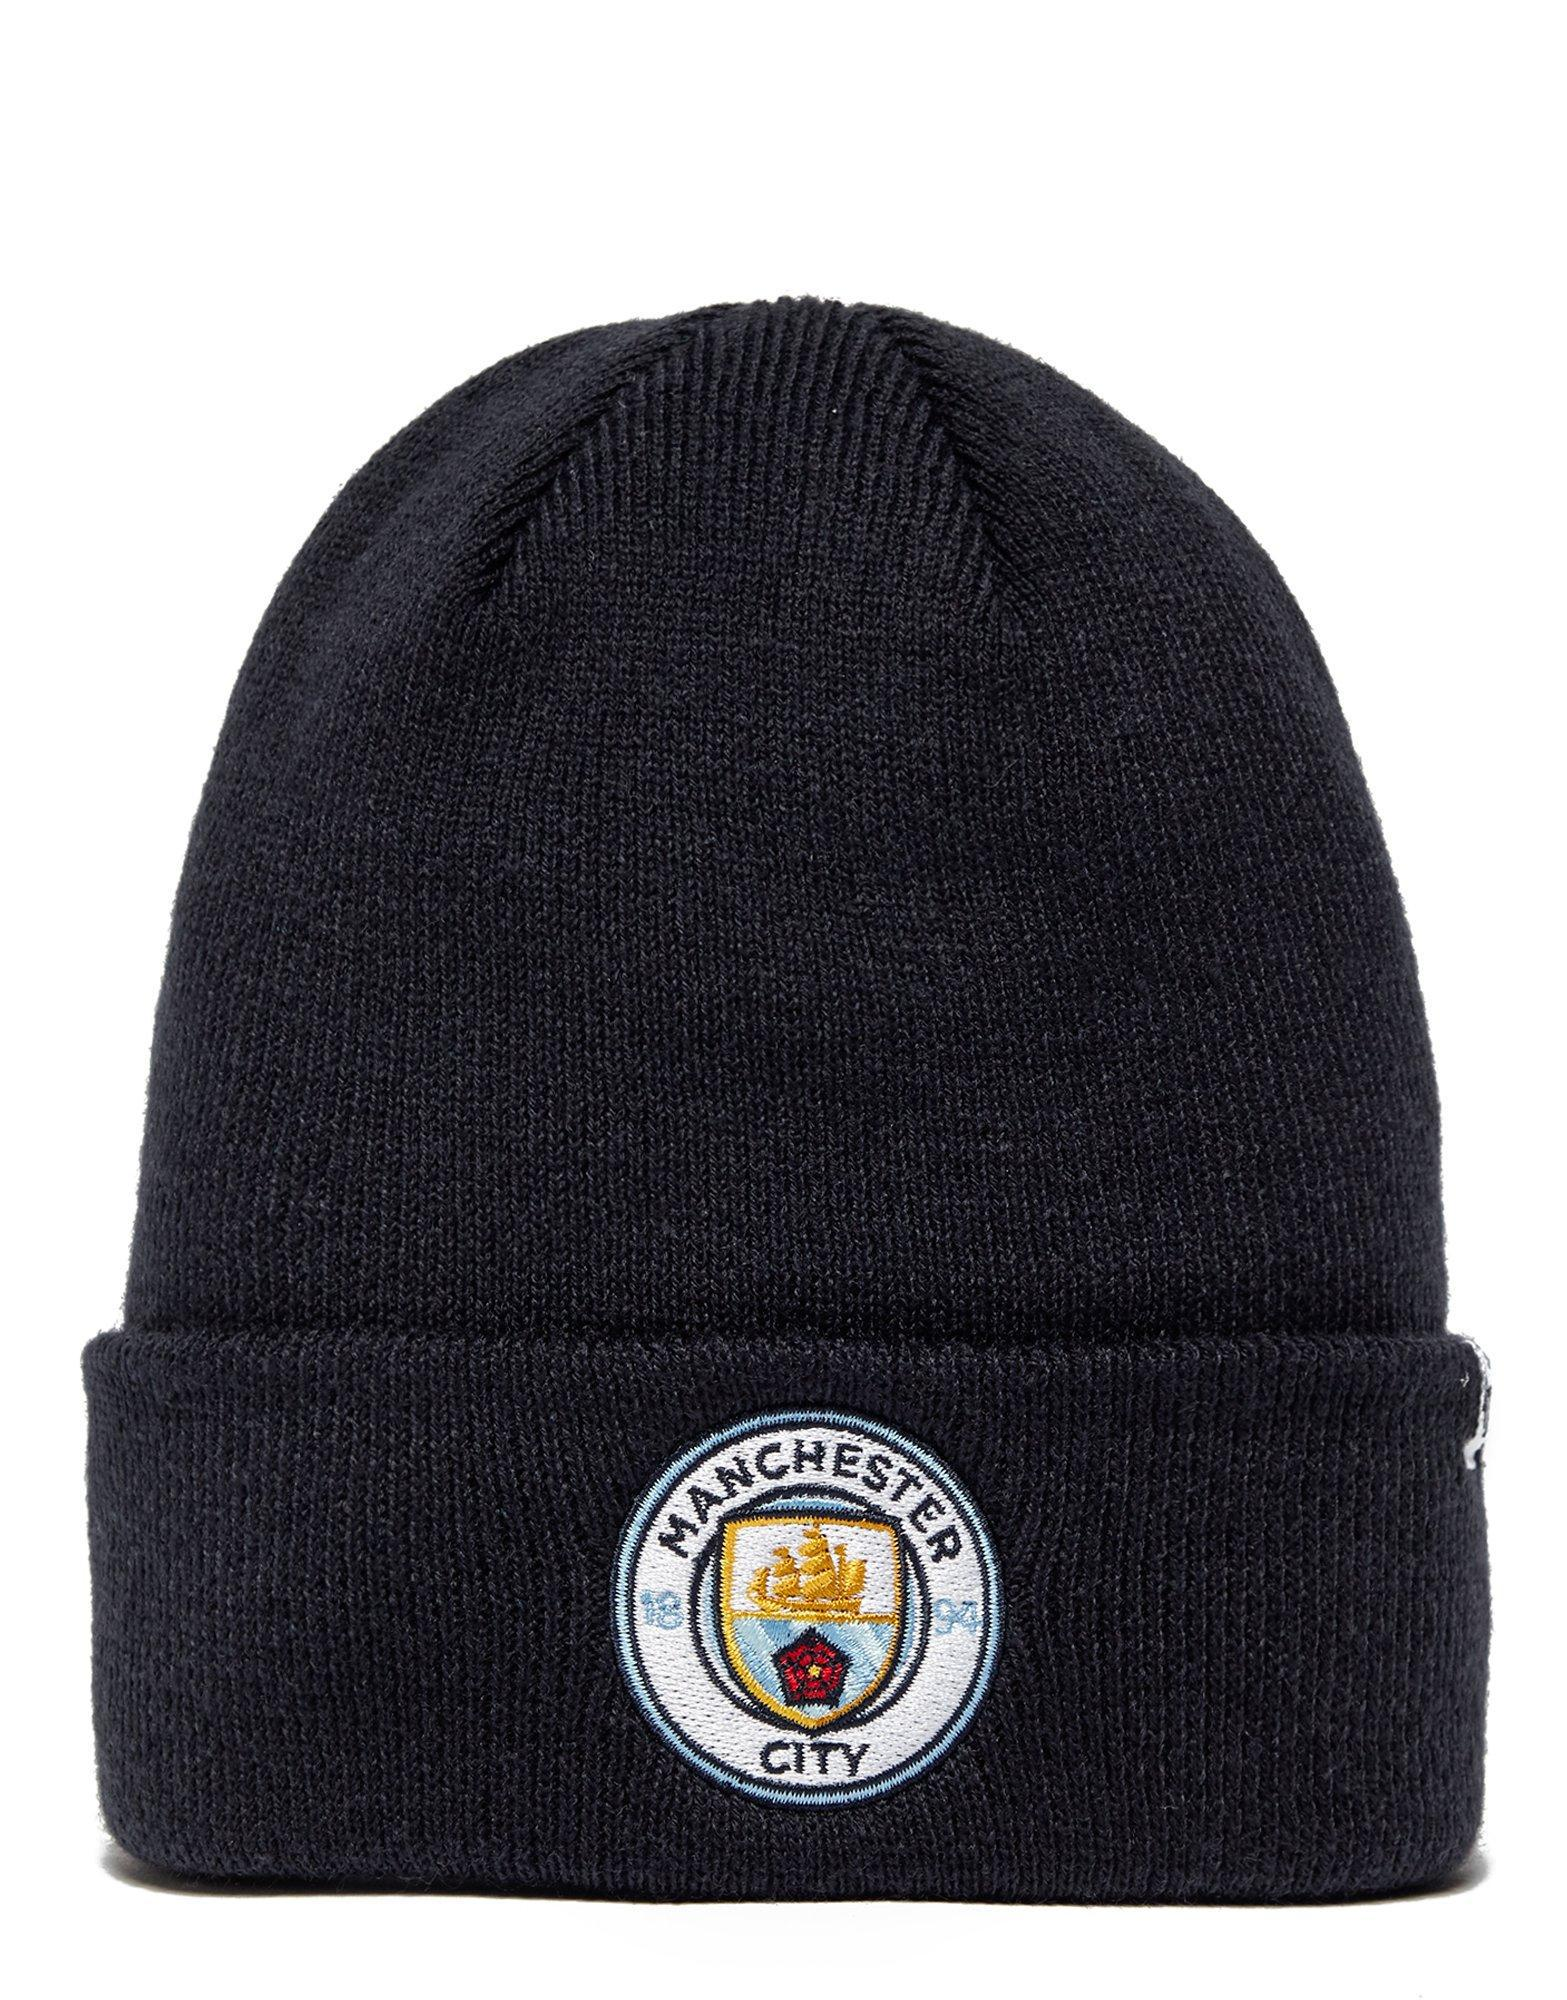 5550ad4497a44 47 Brand Manchester City Fc Cuffed Beanie Hat in Blue - Lyst